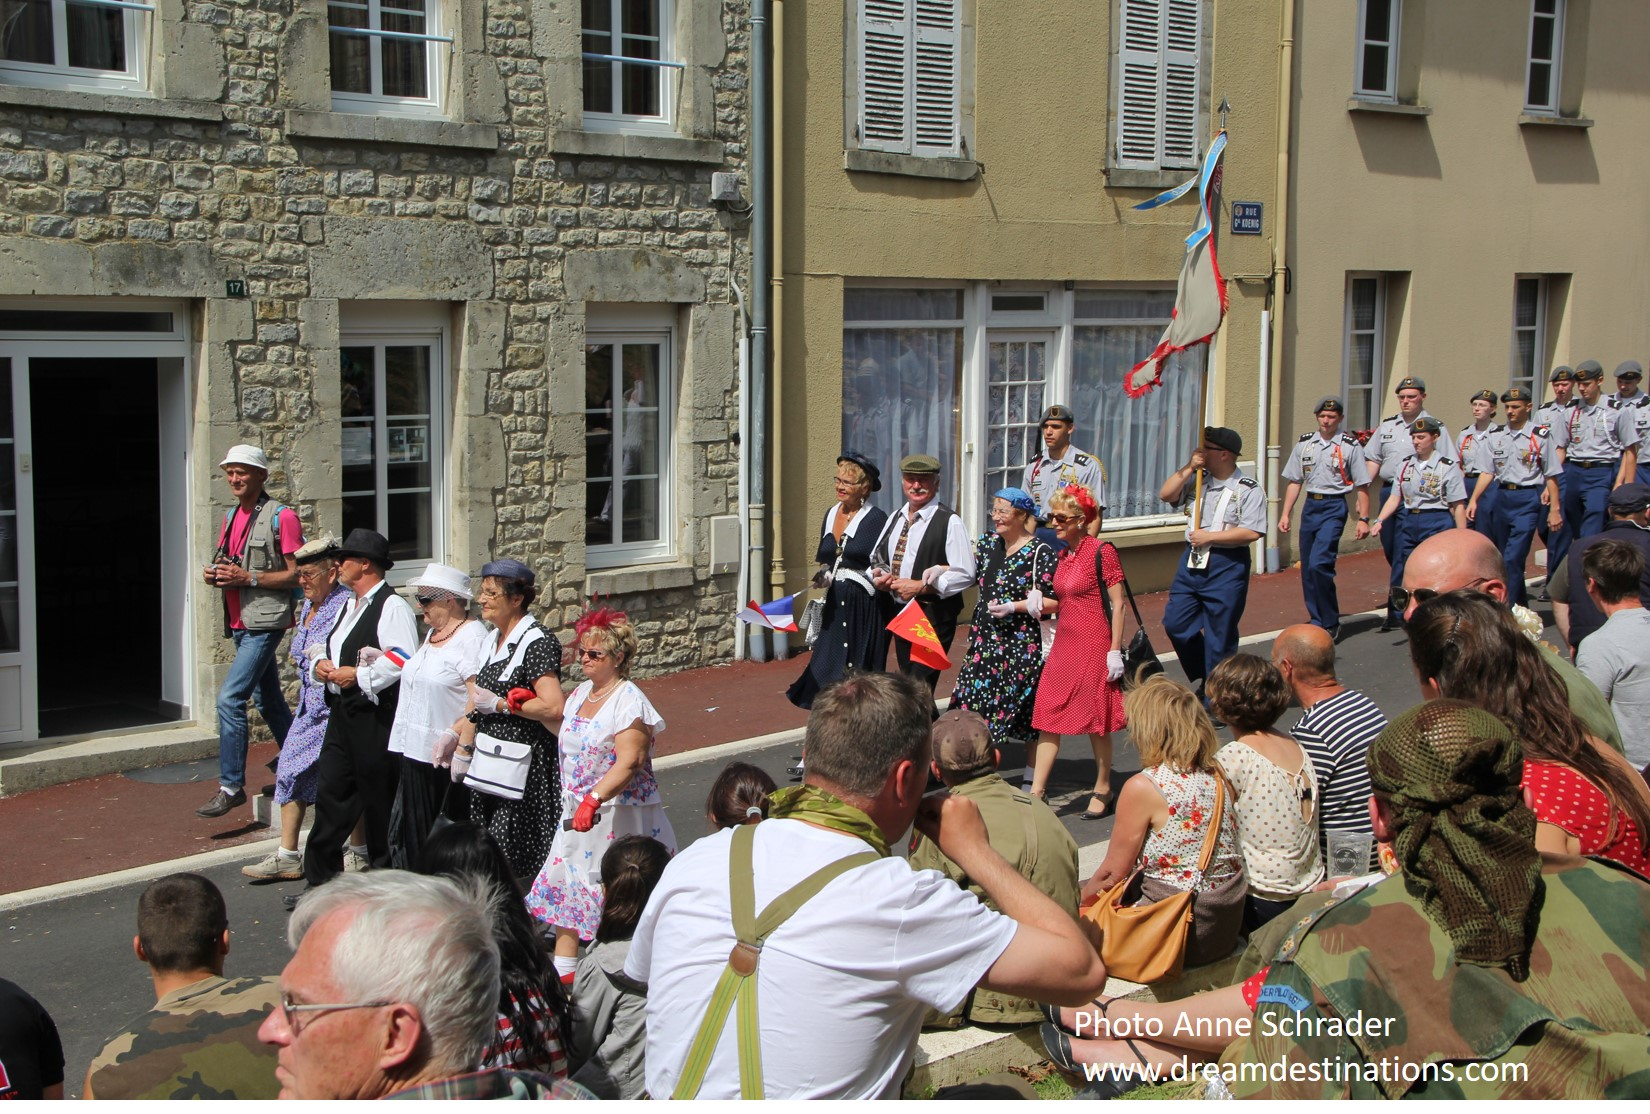 Part of the parade during the 2014 D Day Festival in Ste Mere Eglise